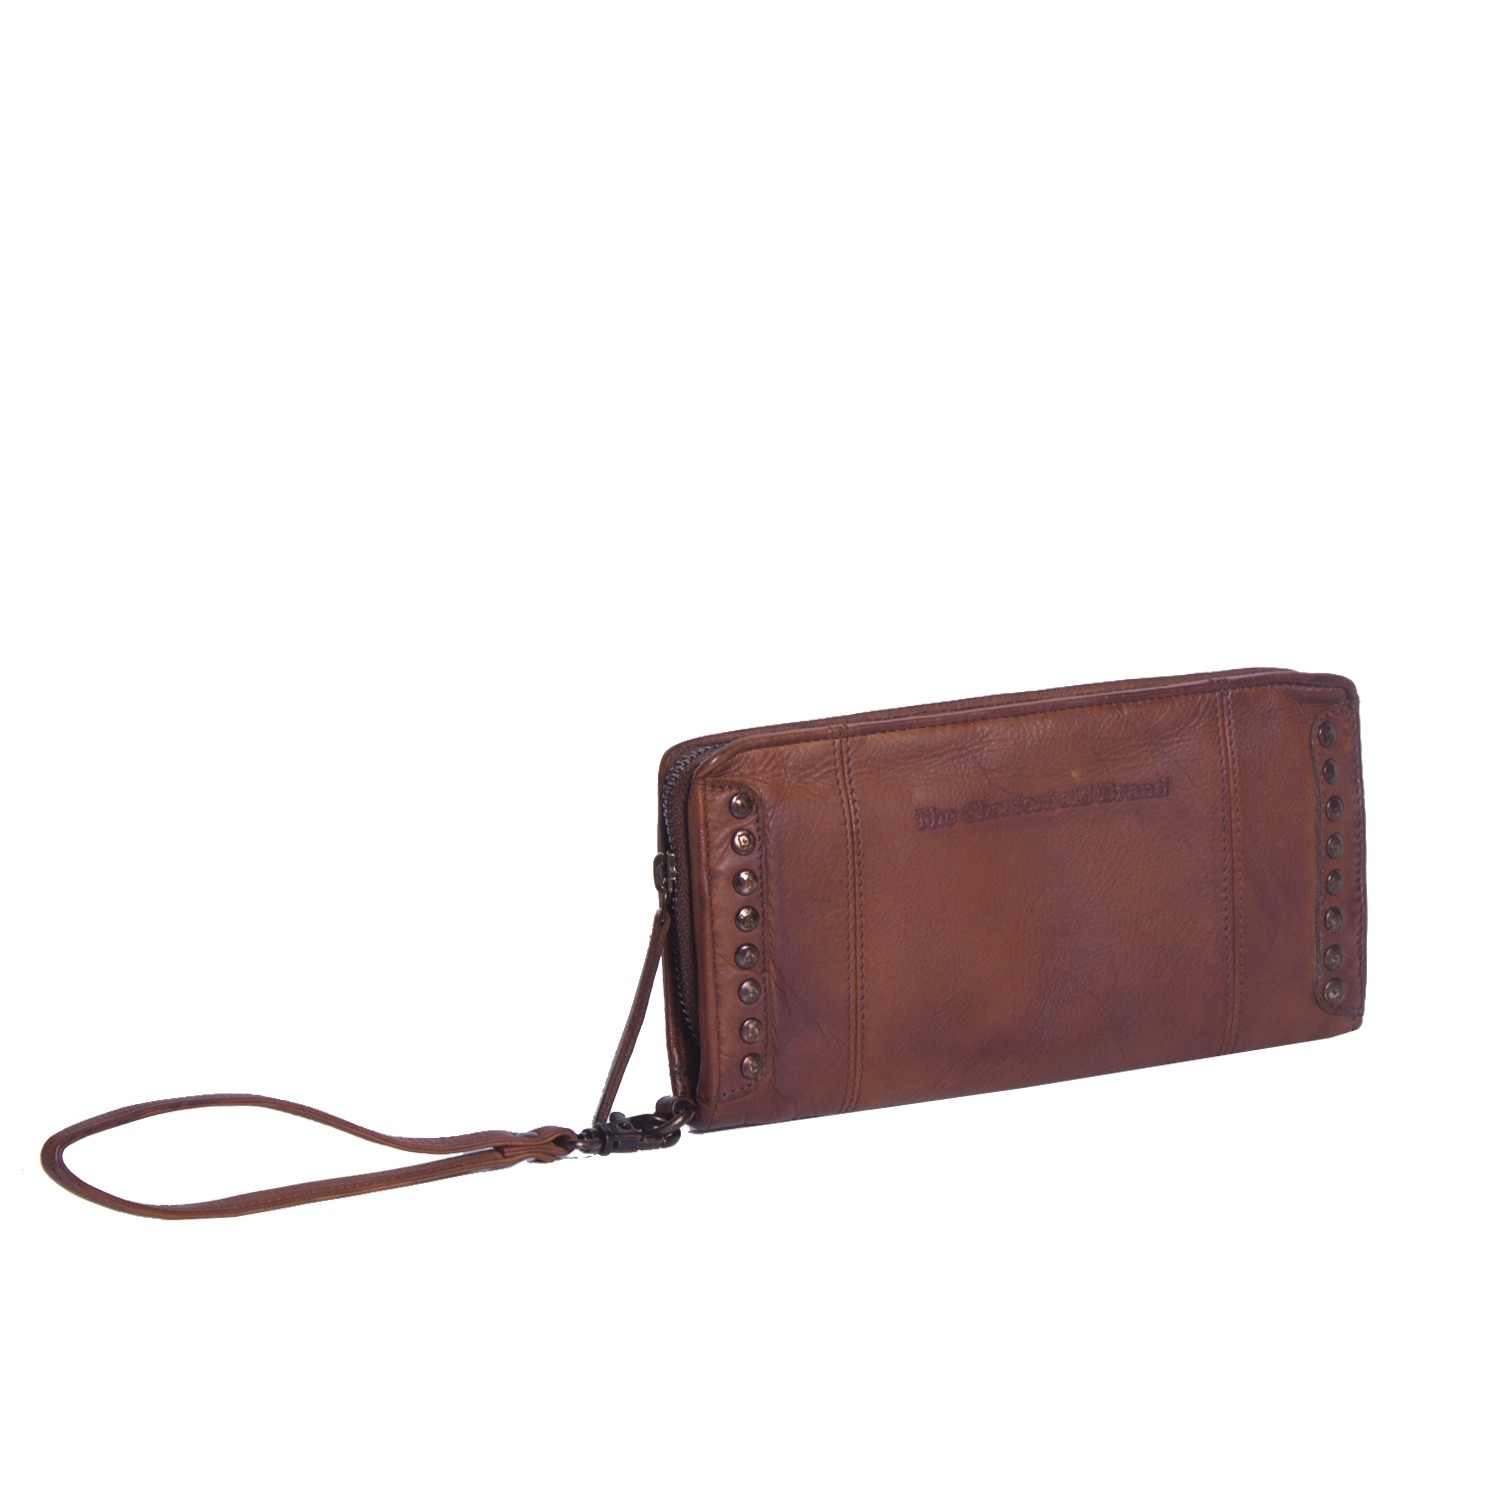 Bilde av Chesterfield Leather Clutch Black Label Cognac Laiza